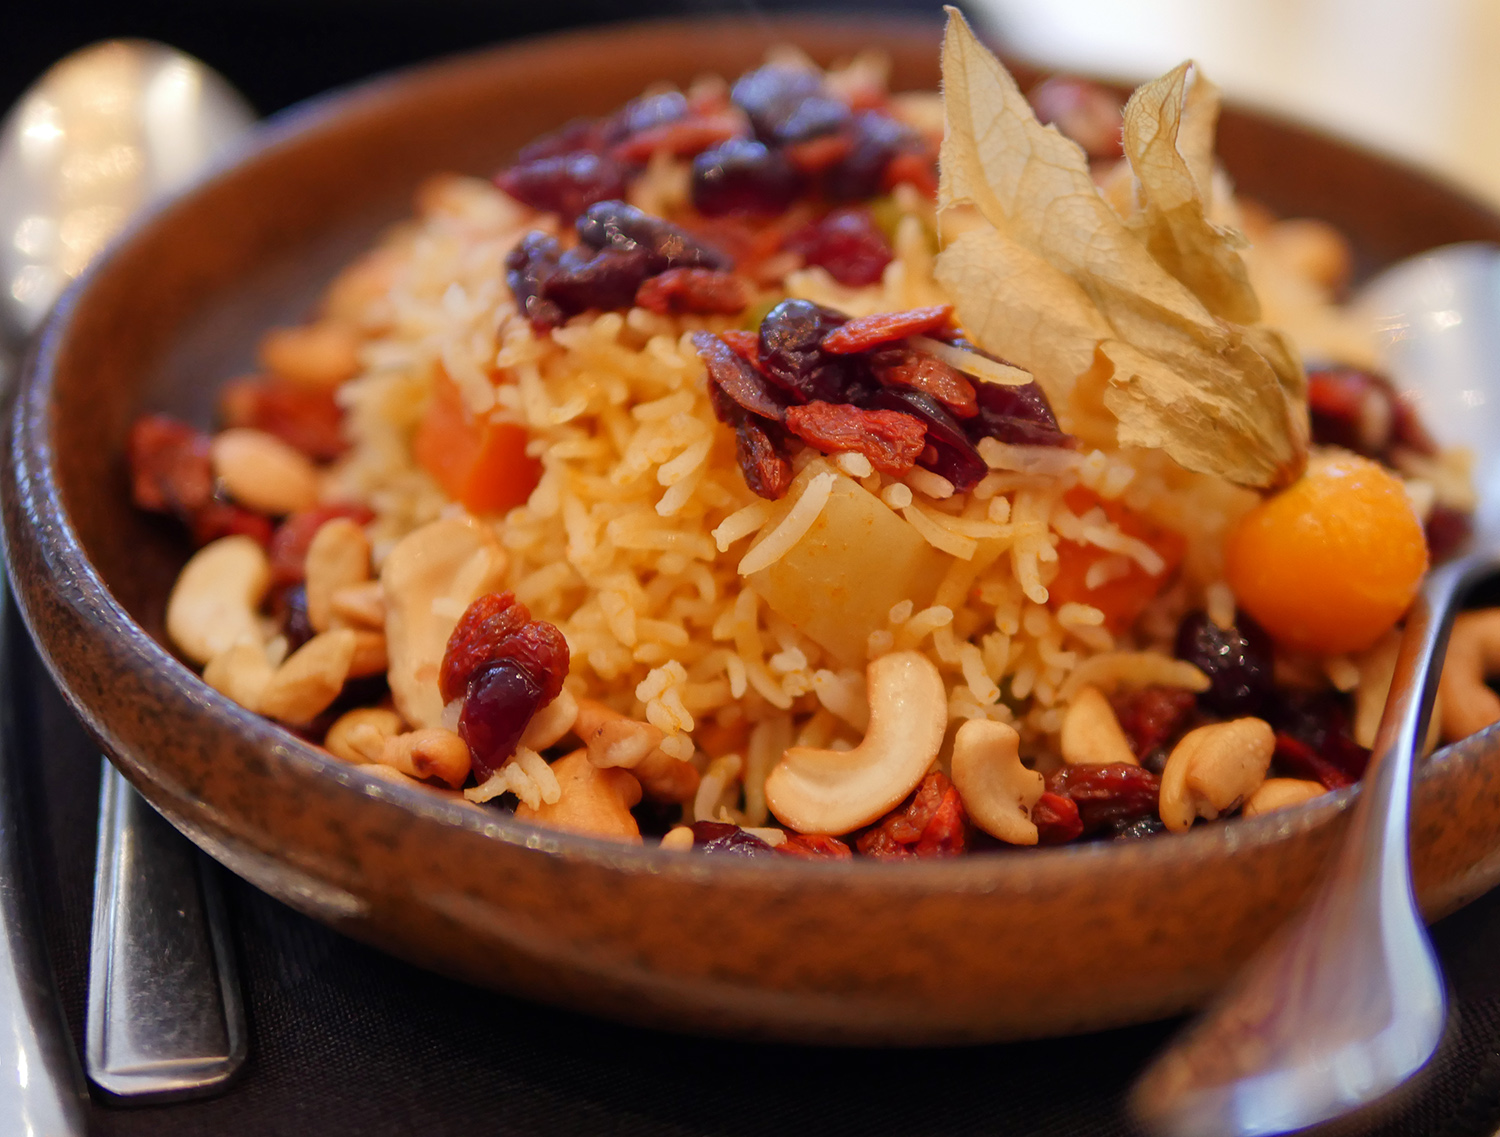 Matsya Indian Restaurant Mayfair - Veg Berry Pulao